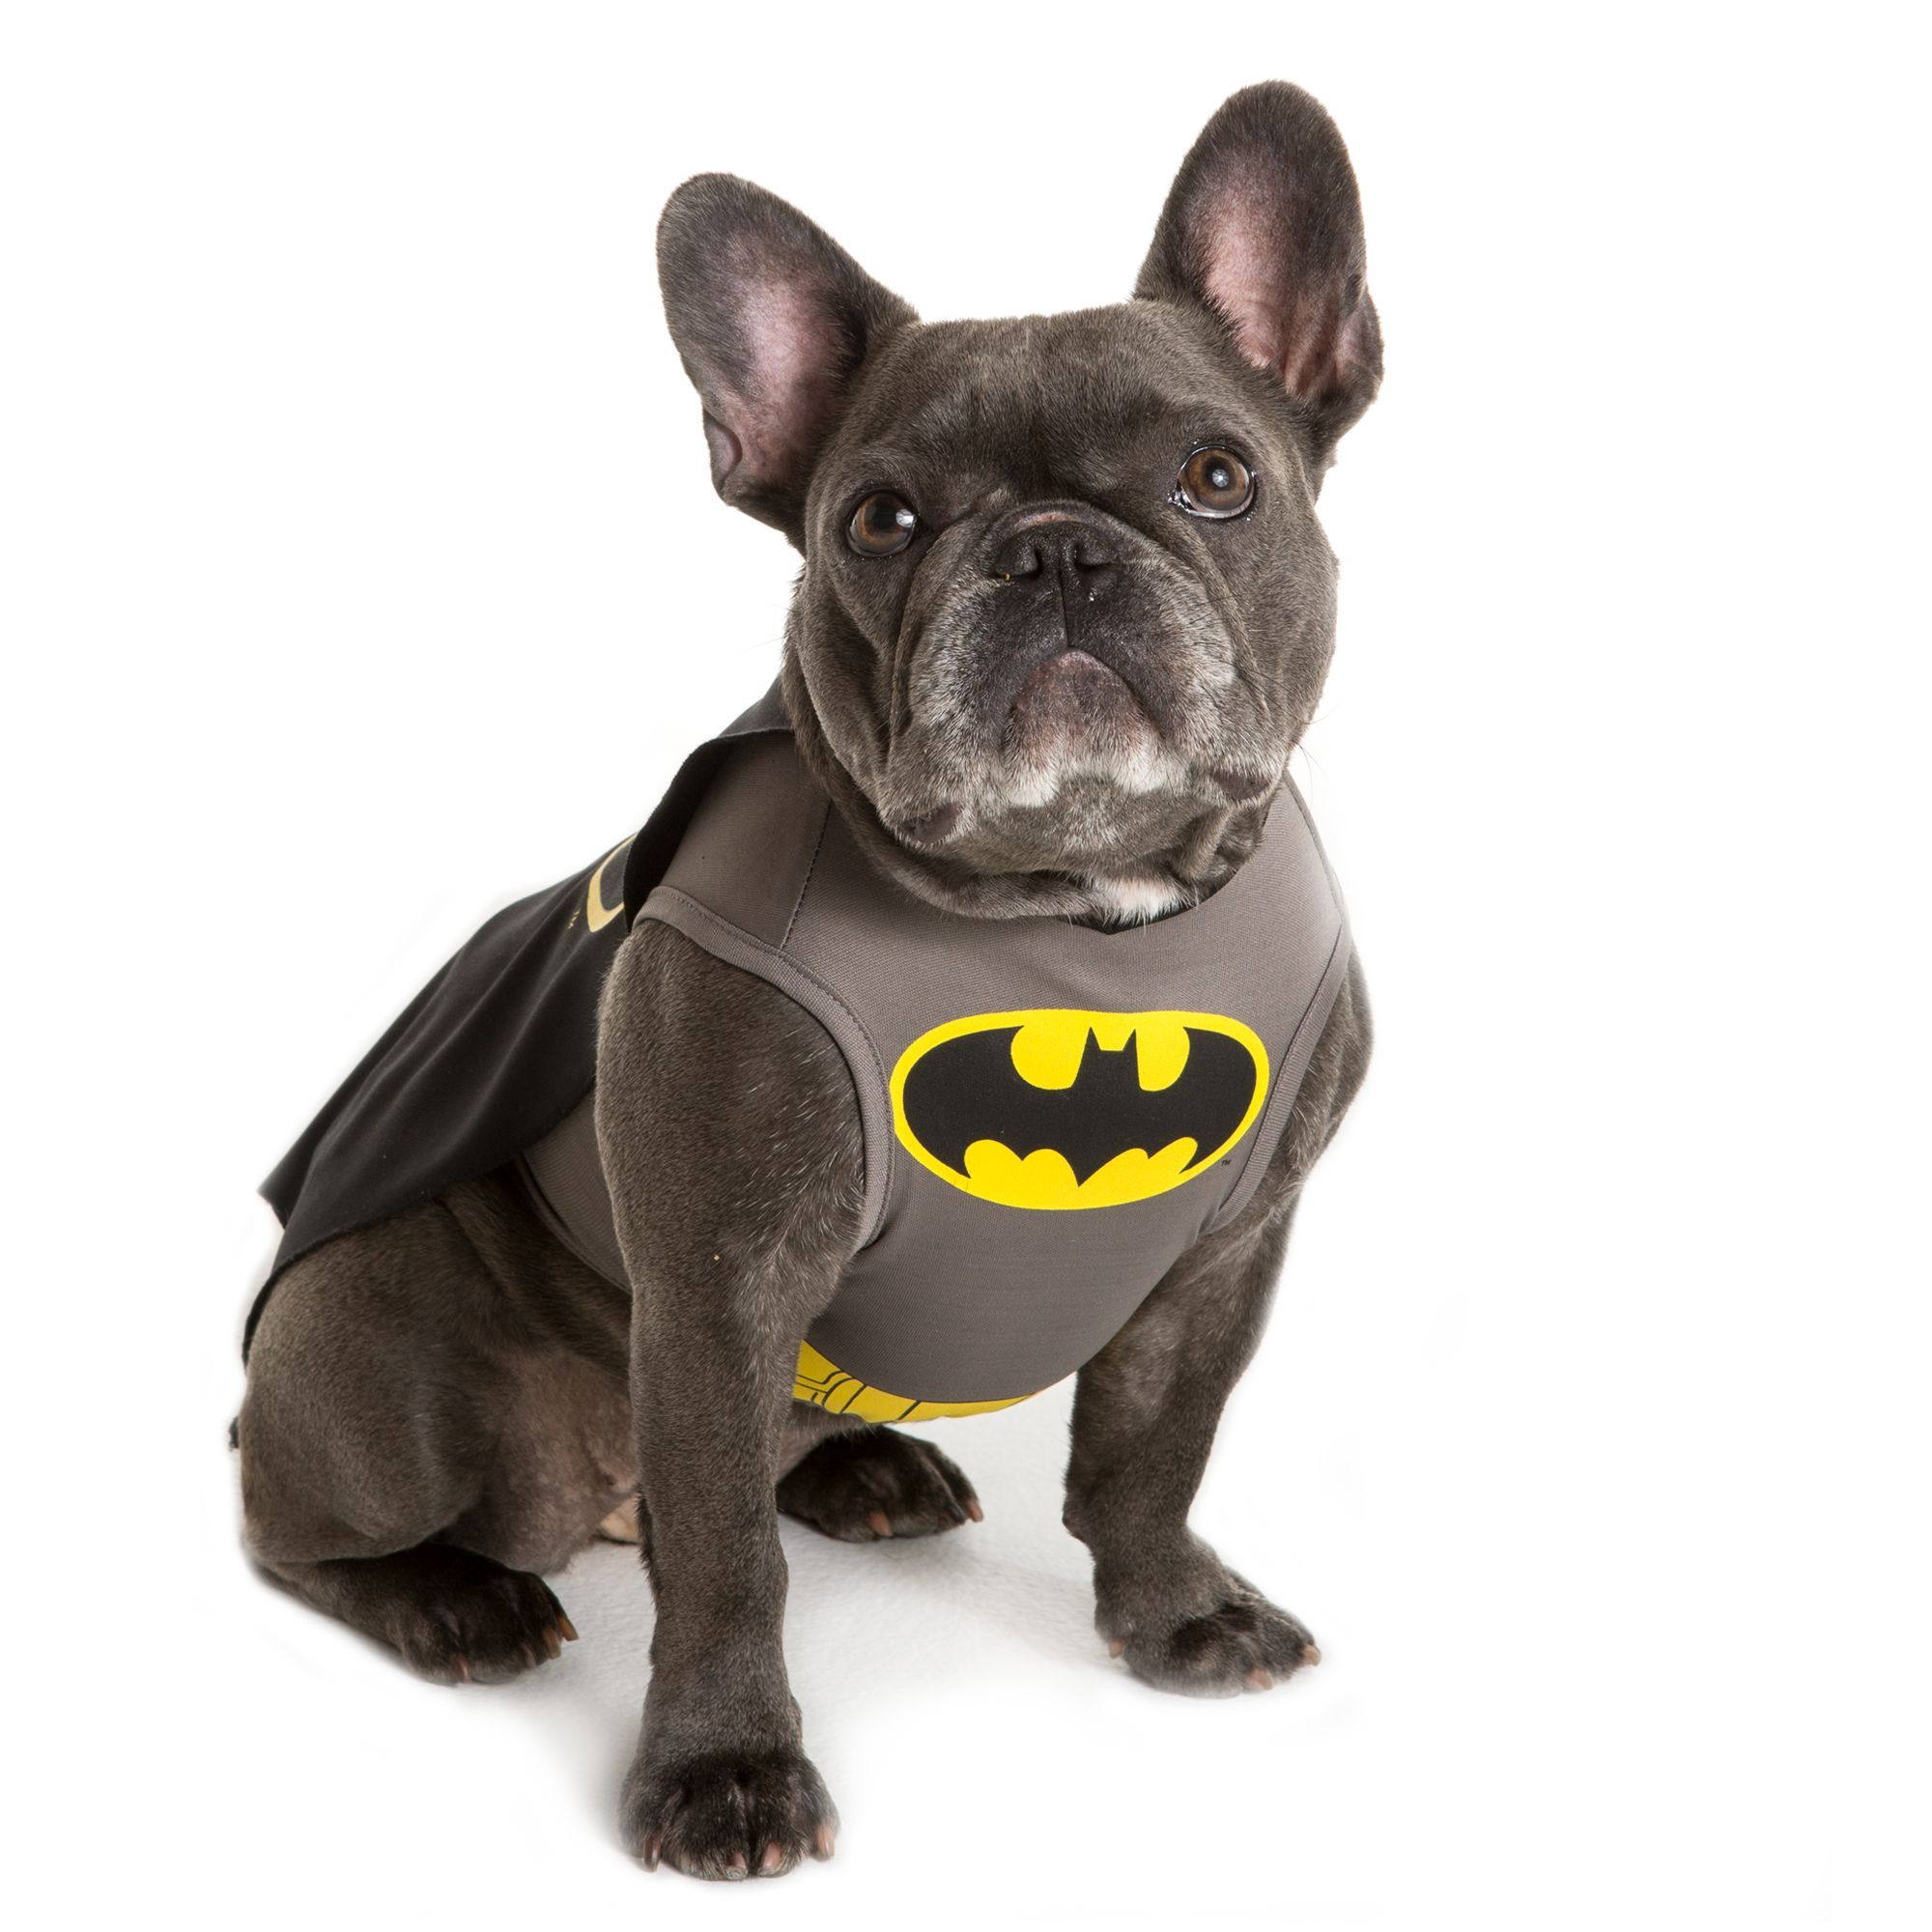 Halloween Pets Costumes Toys Treats More At Petsmart Batman Dog Costume Pet Costumes Dog Halloween